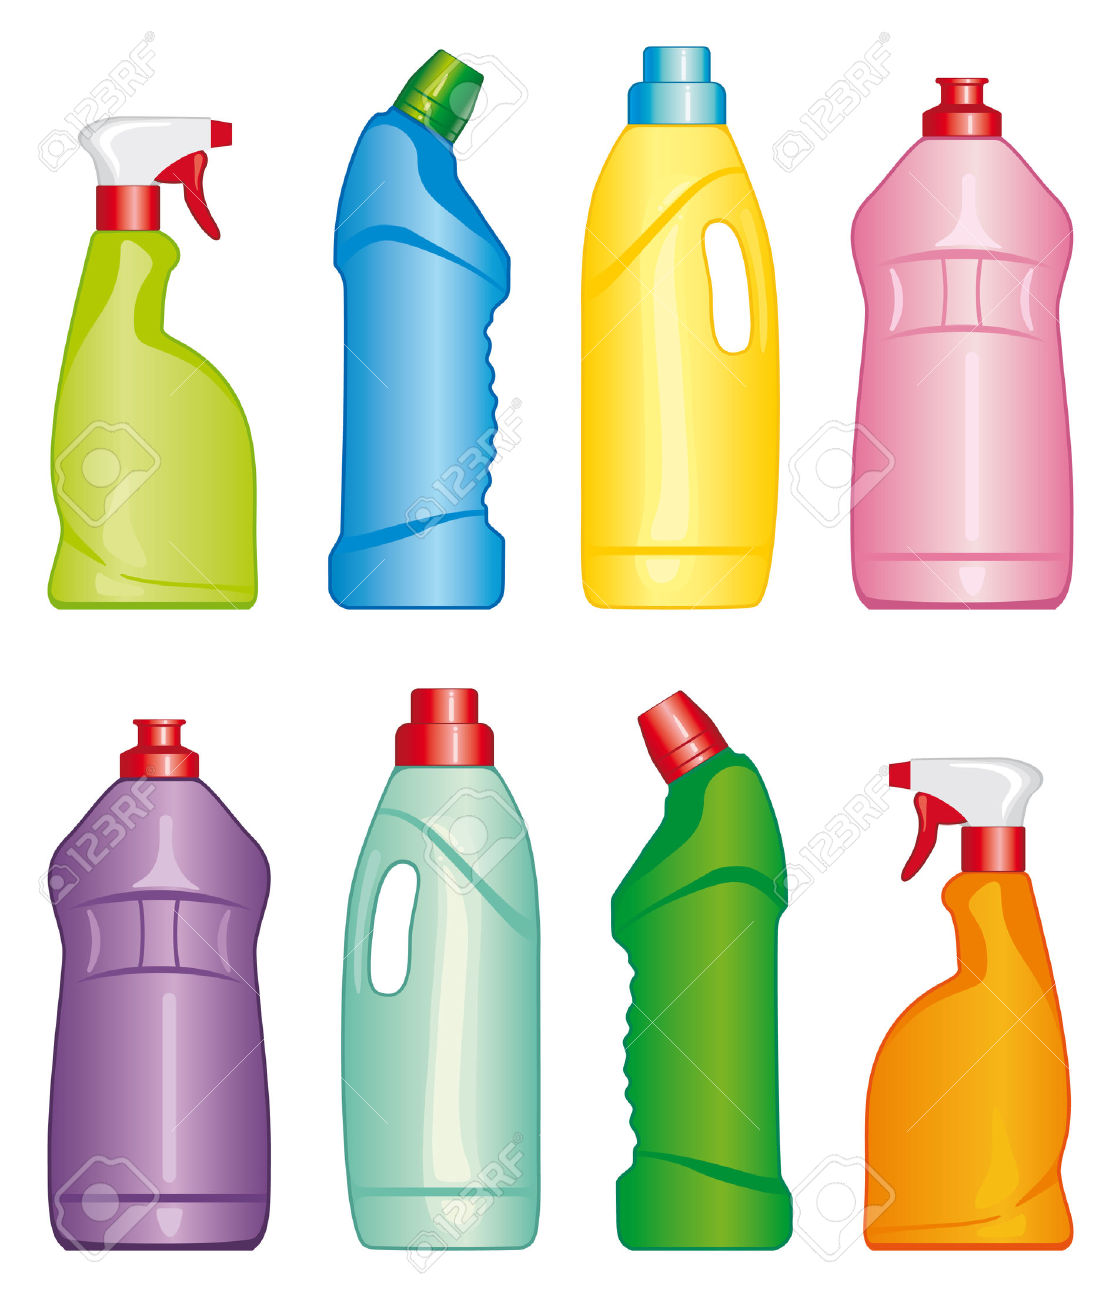 Bottles Of Cleaning Products Royalty Free Cliparts, Vectors, And.